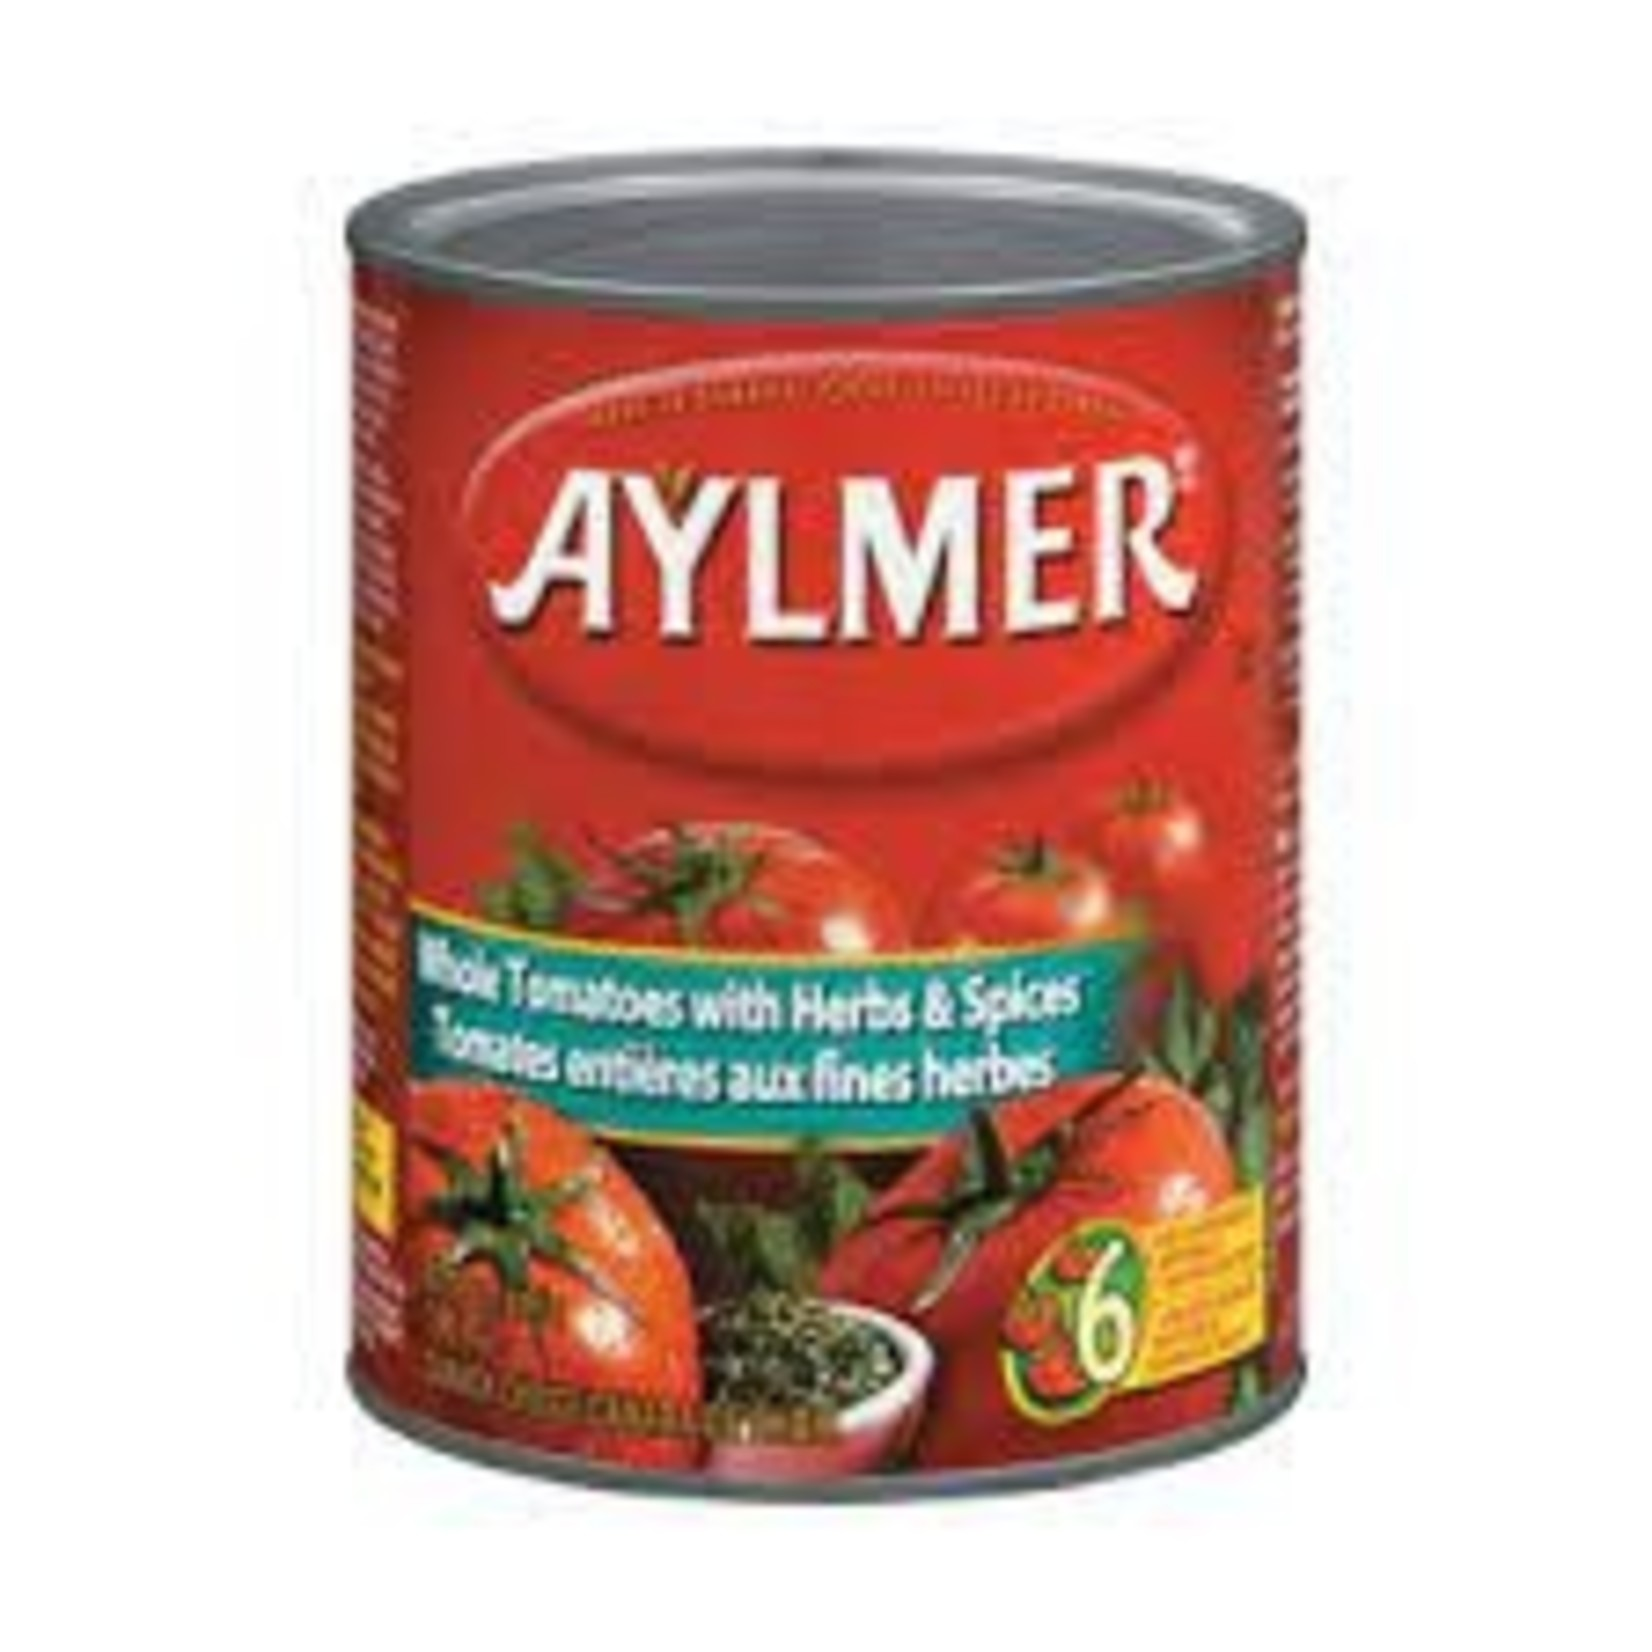 Aylmer Whole Tomatoes with Herbs & Spices 796ml